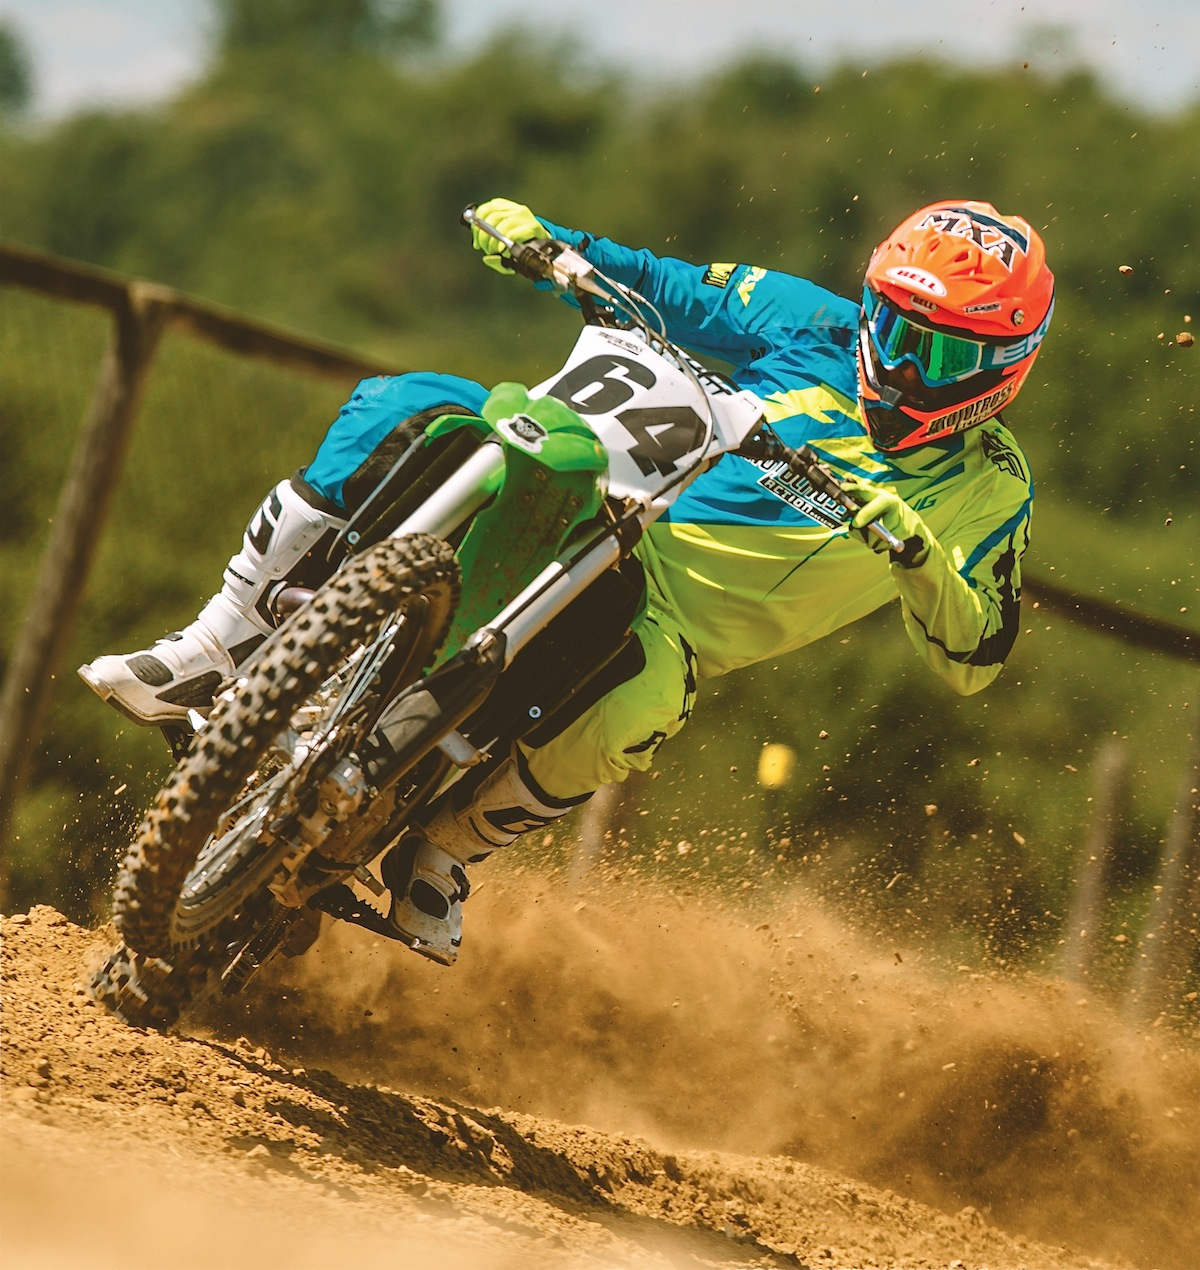 2016 Mxa Race Test Everything You Need To Know About The Kawasaki Cam Sensor Wiring Diagram 2006 Freestyle Kx450faction2